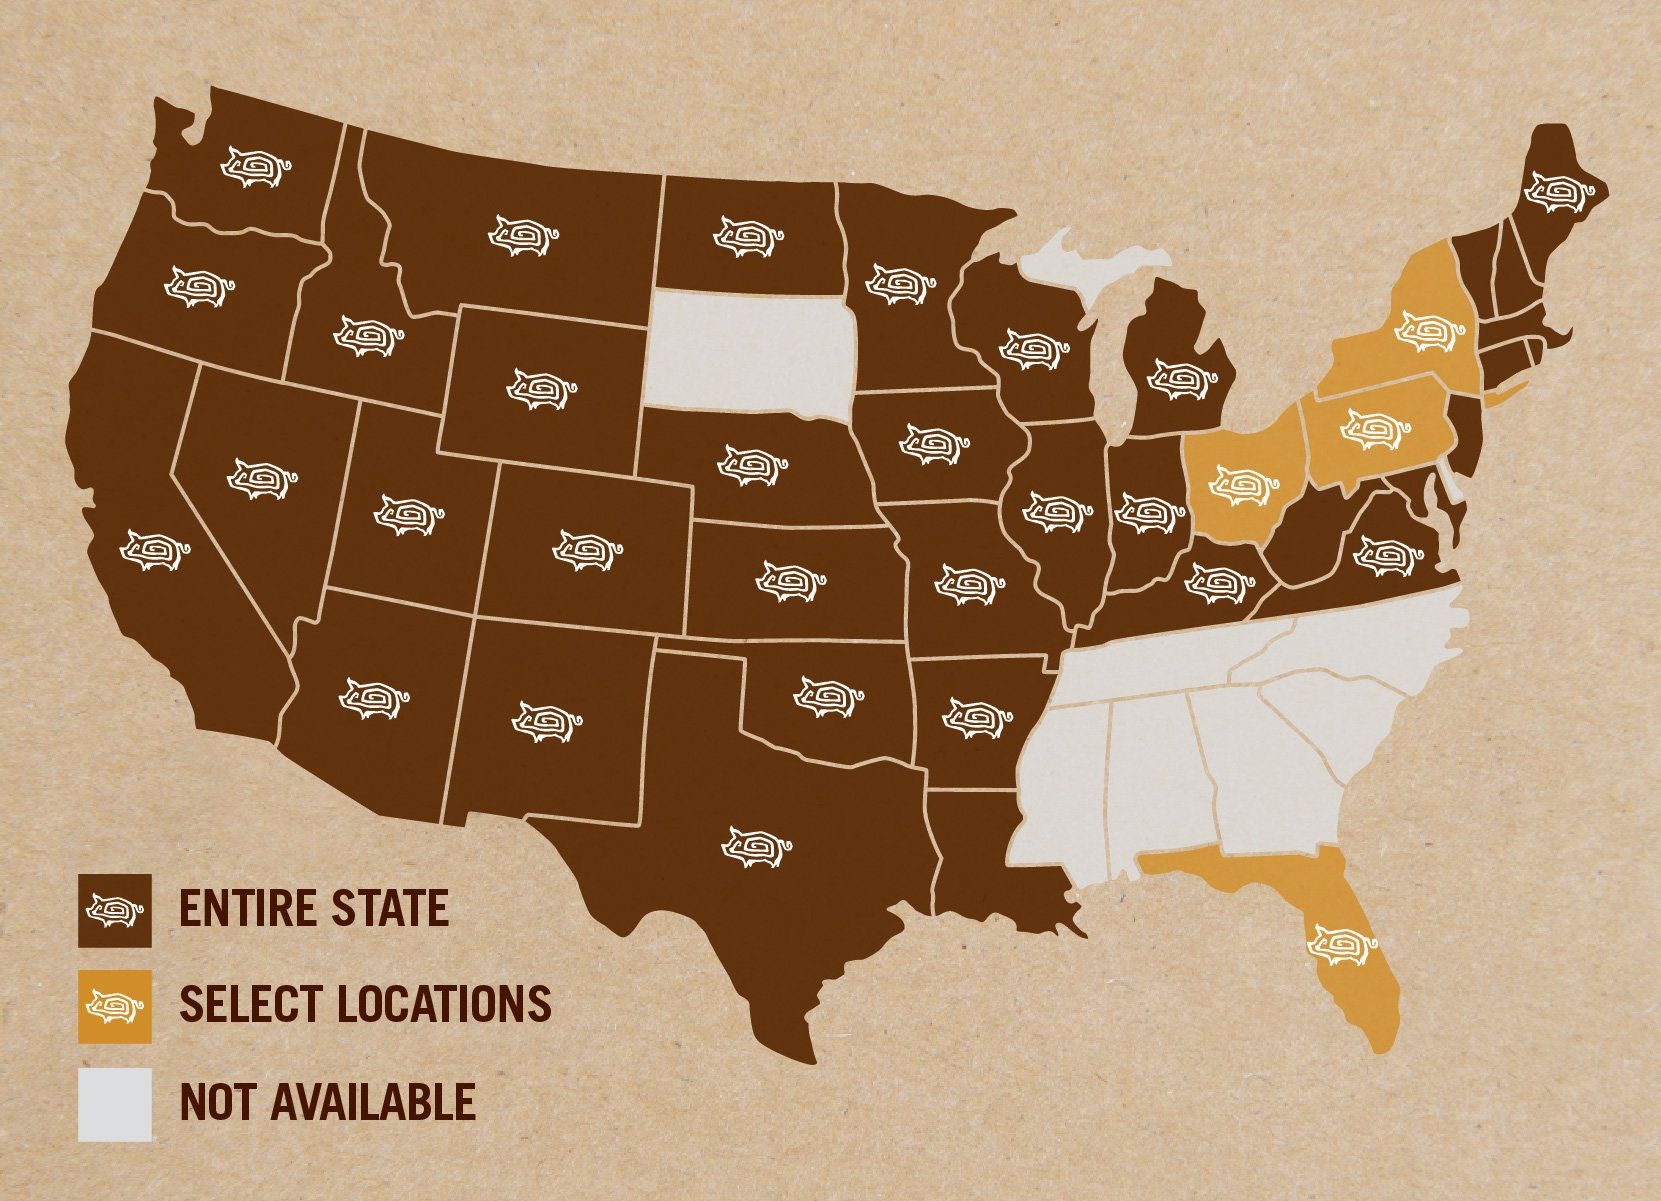 Chipotle Stores Map ChipotleHow Menu Innovations Generate Lots Of